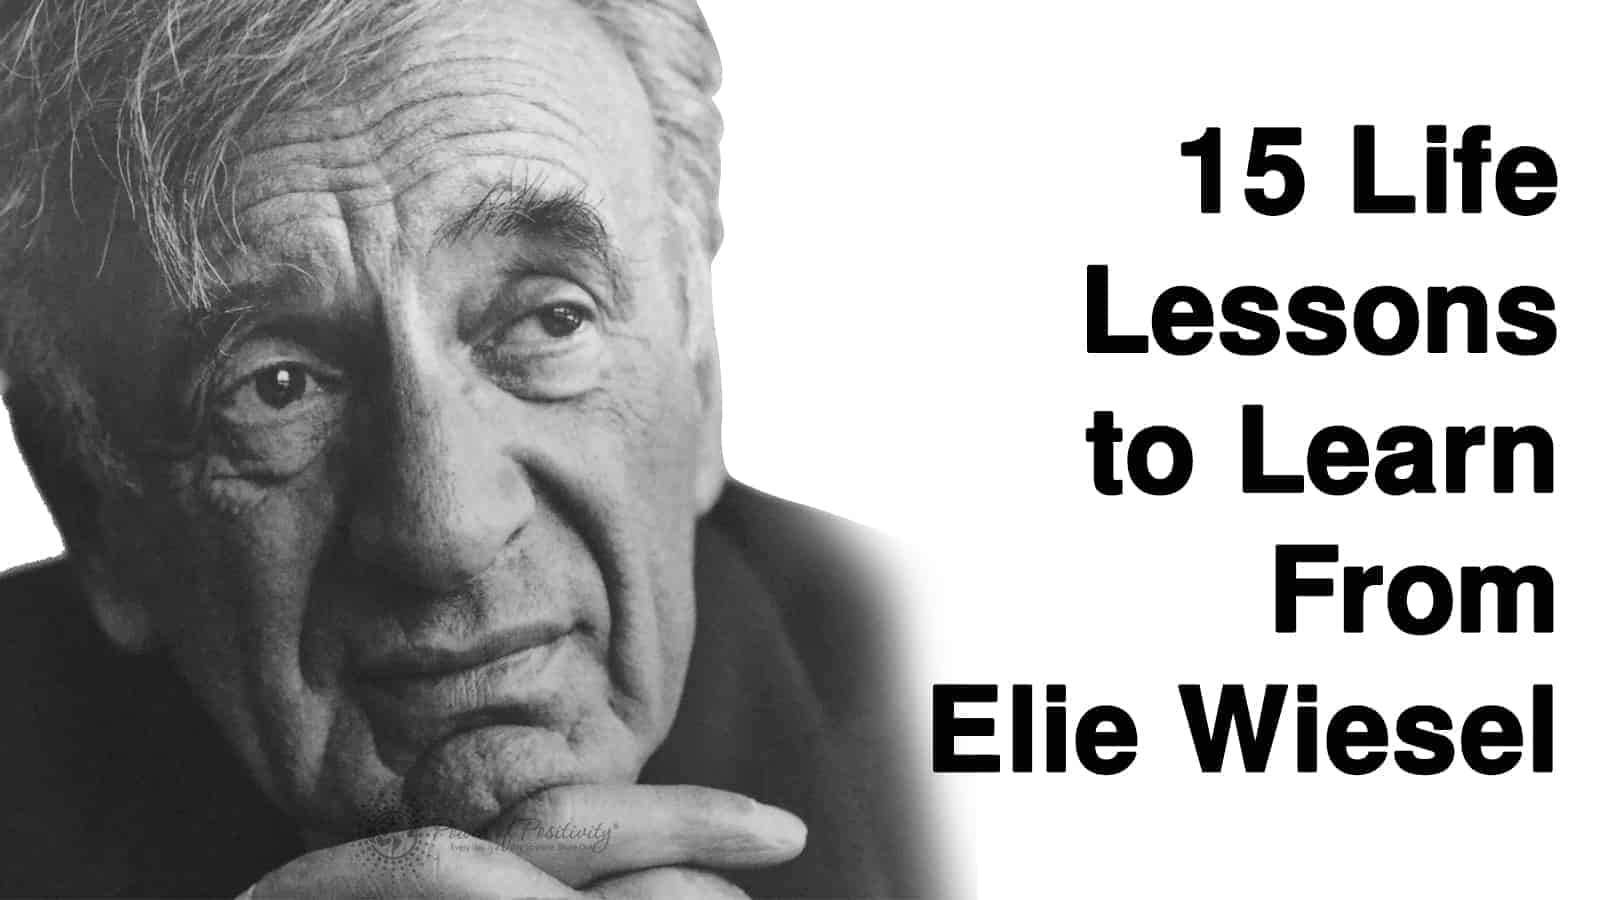 15 Life Lessons To Learn From Elie Wiesel